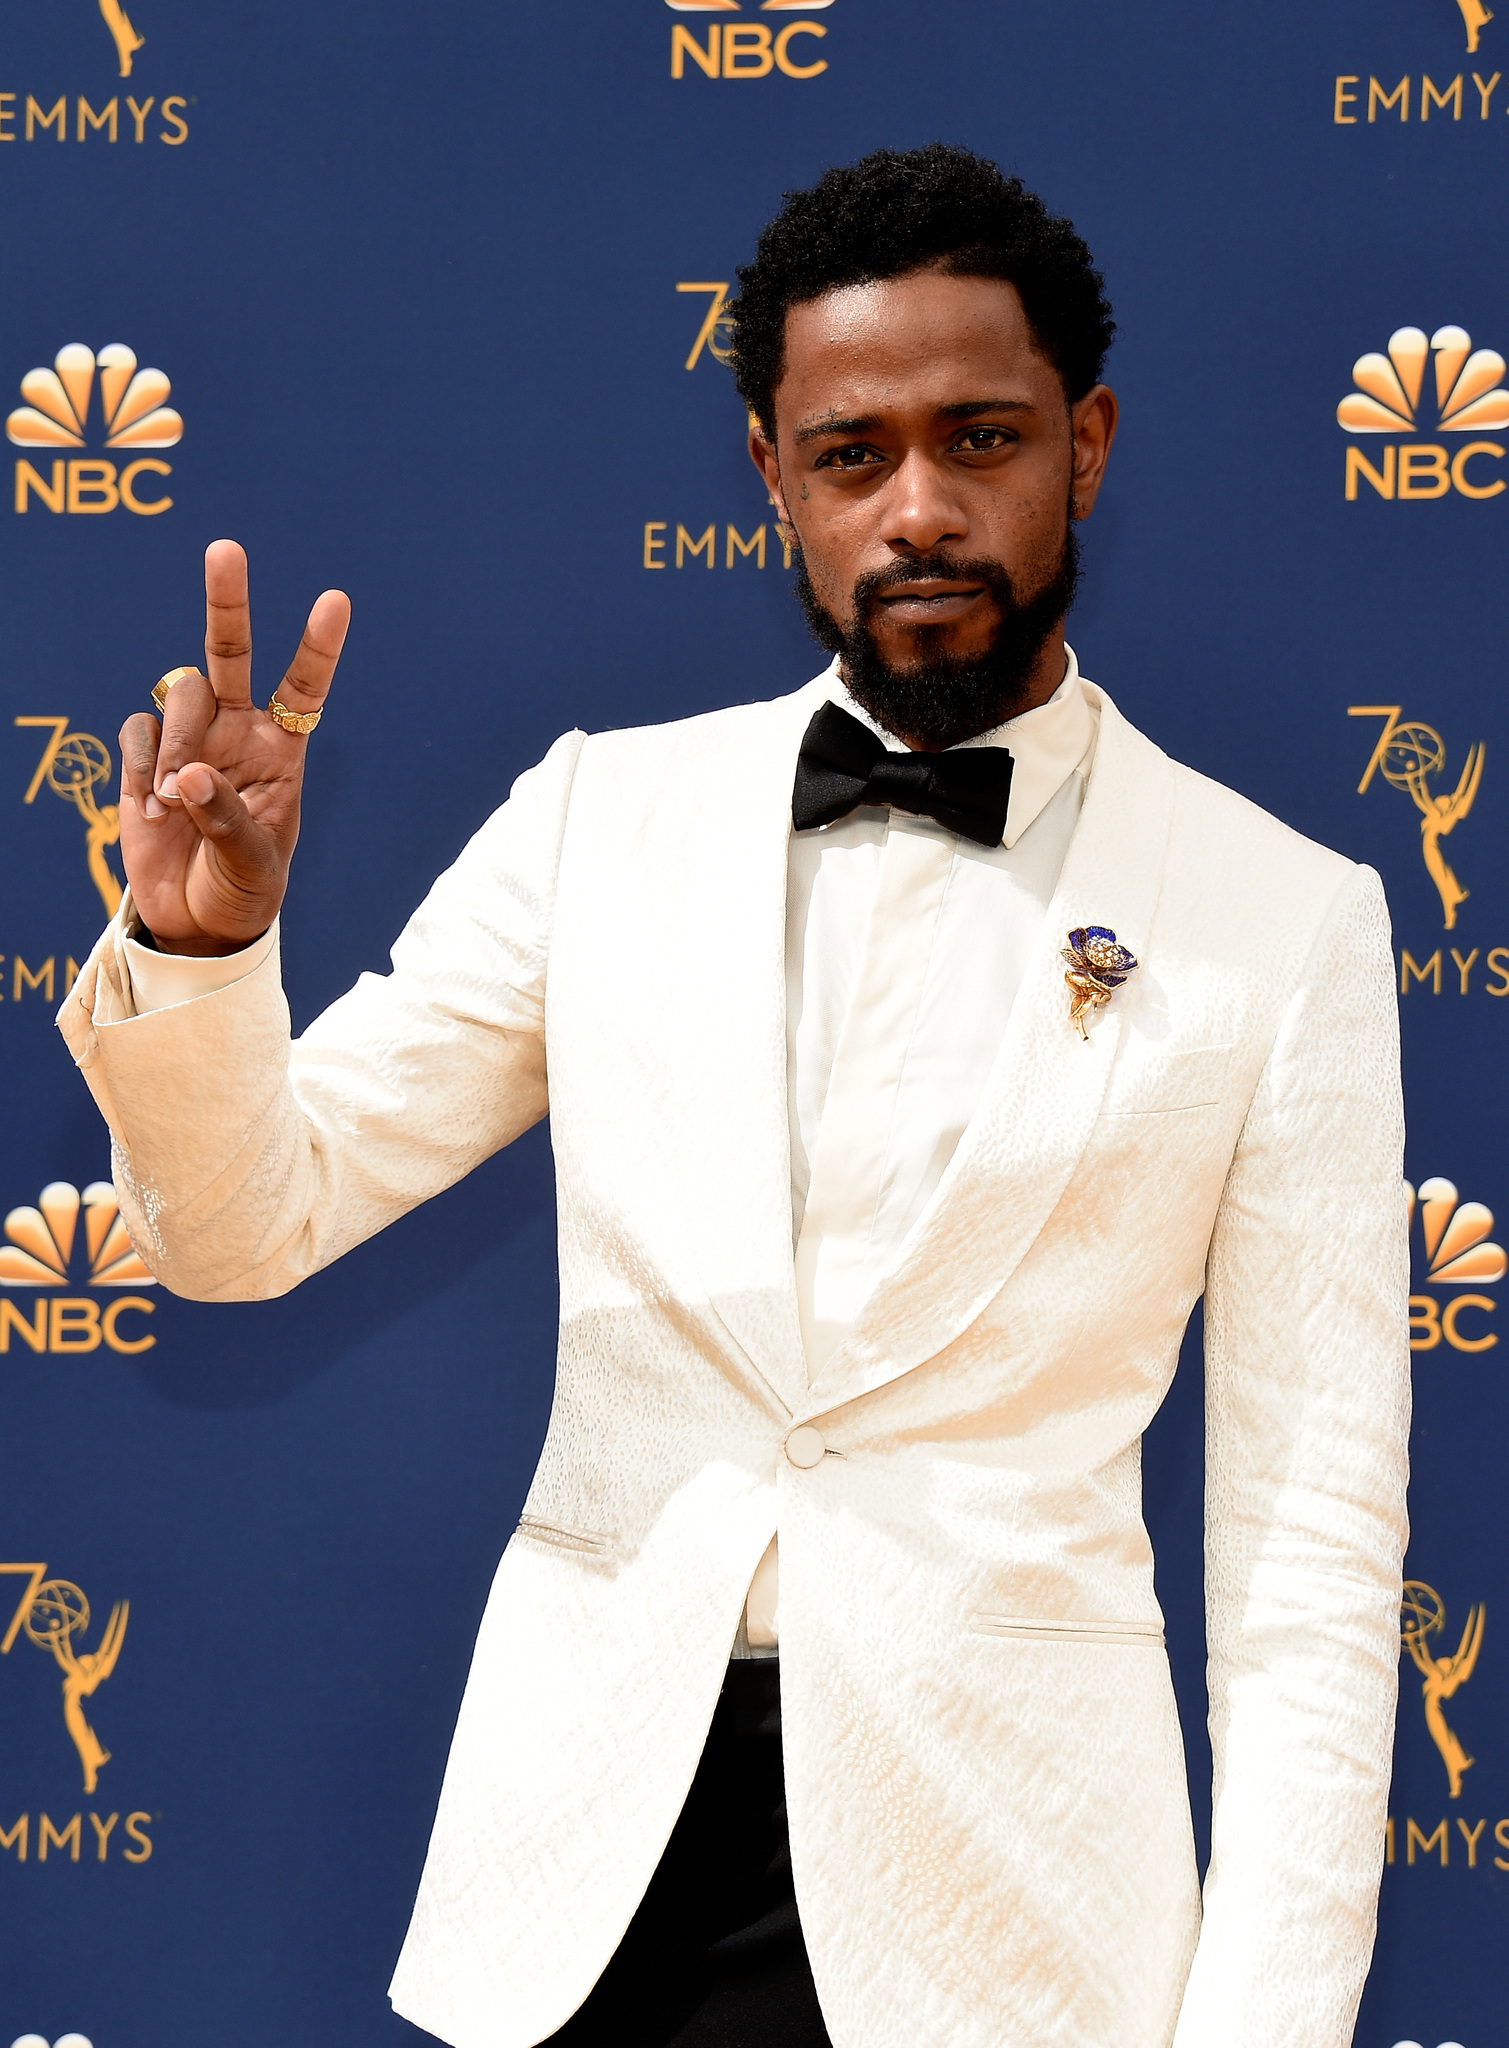 LaKeith Stanfield at an event for The 70th Primetime Emmy Awards (2018)